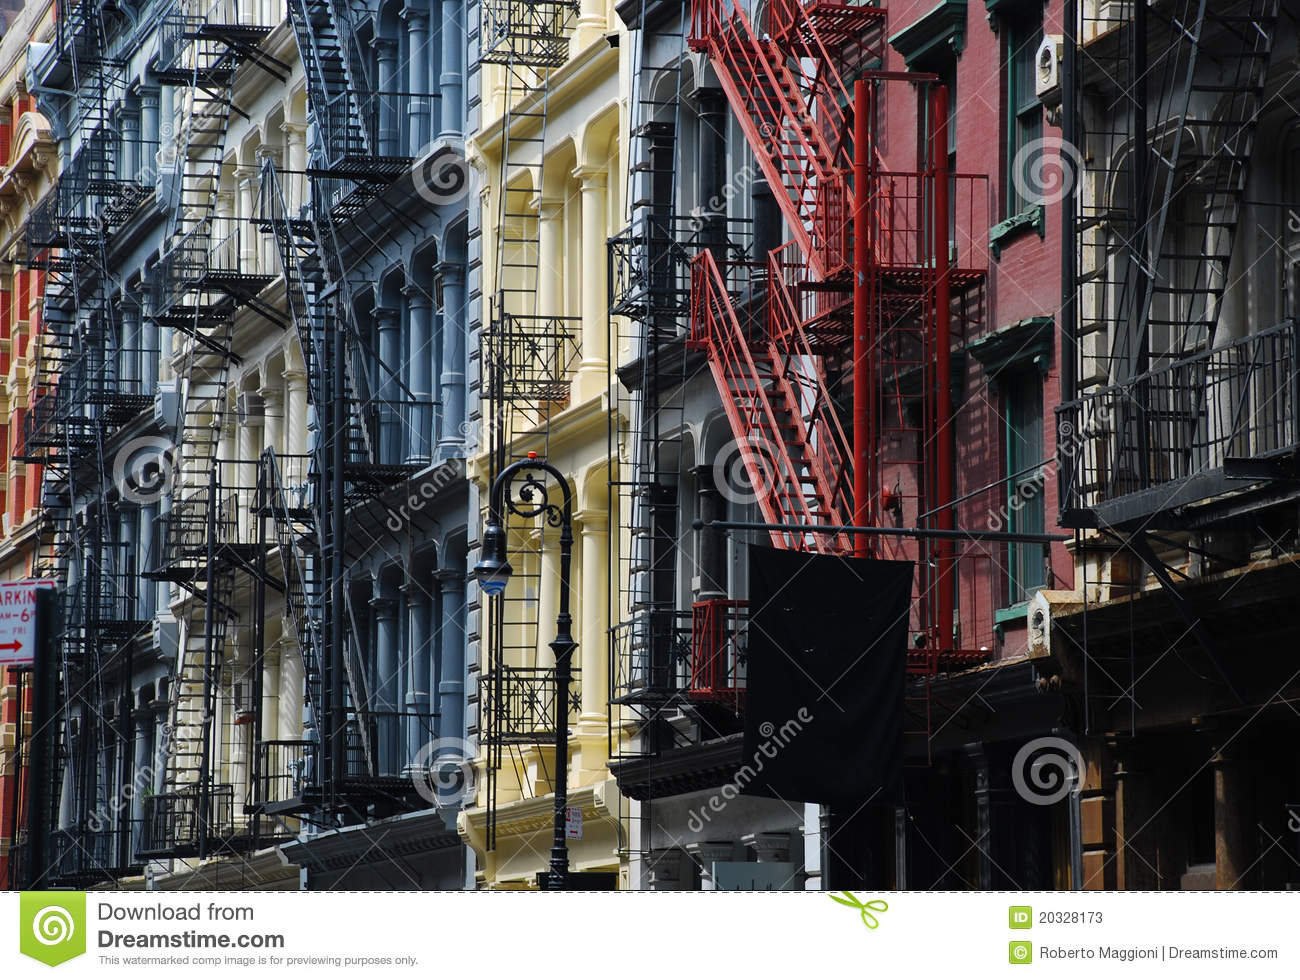 Soho, New York. Cast iron architecture